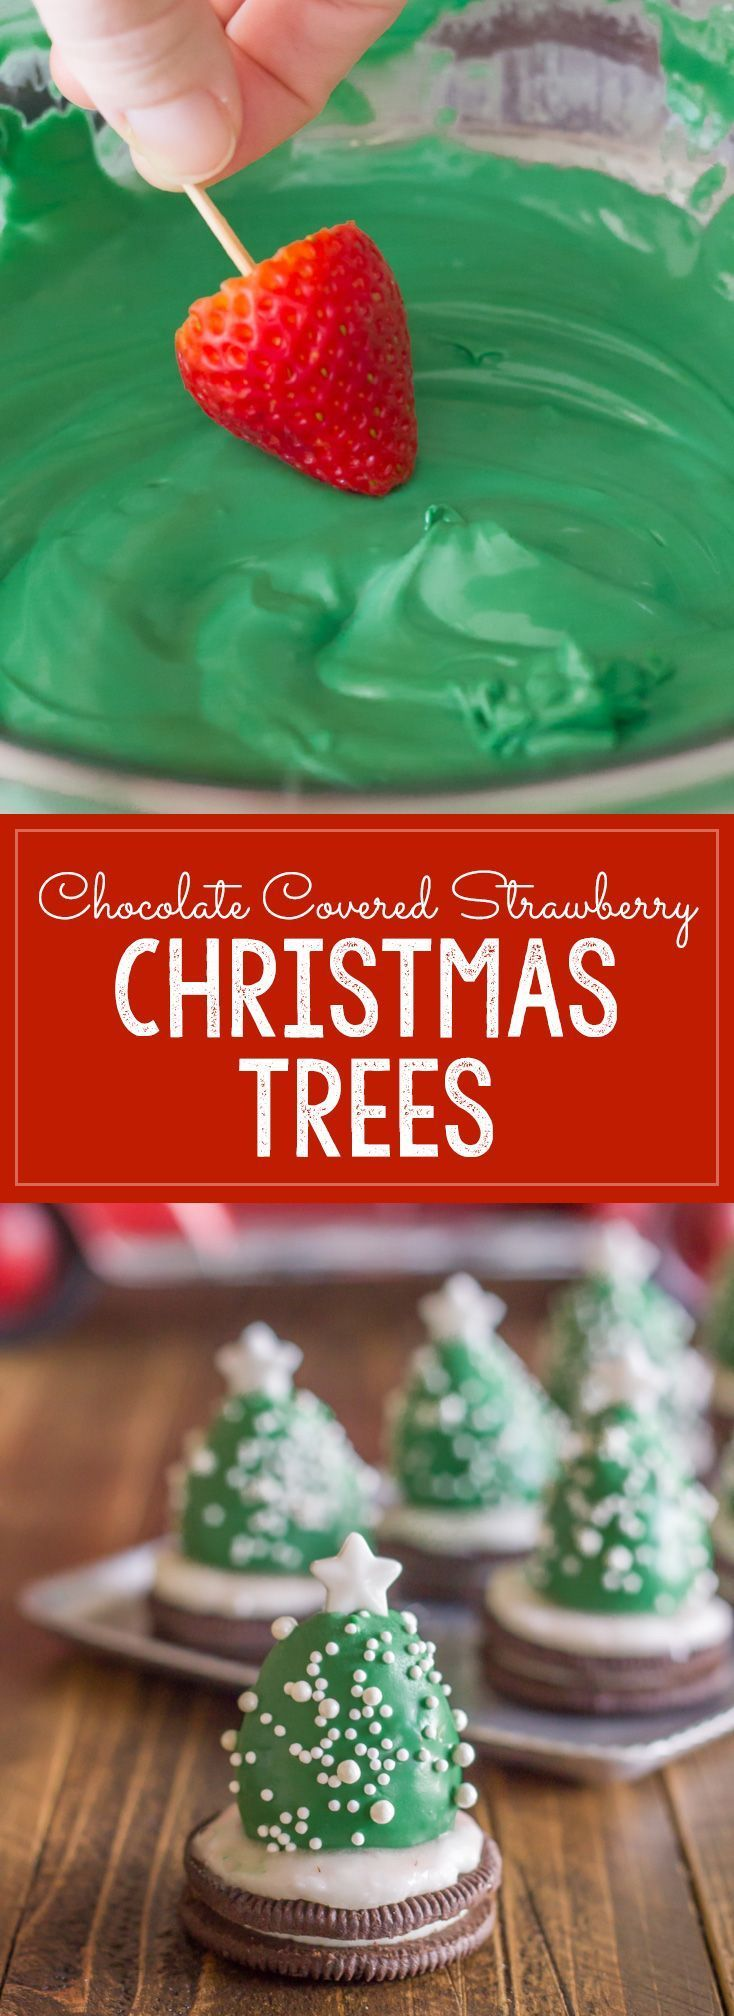 DIY Strawberry Christmas Trees with an OREO base are easy enough for kids of all ages to create!